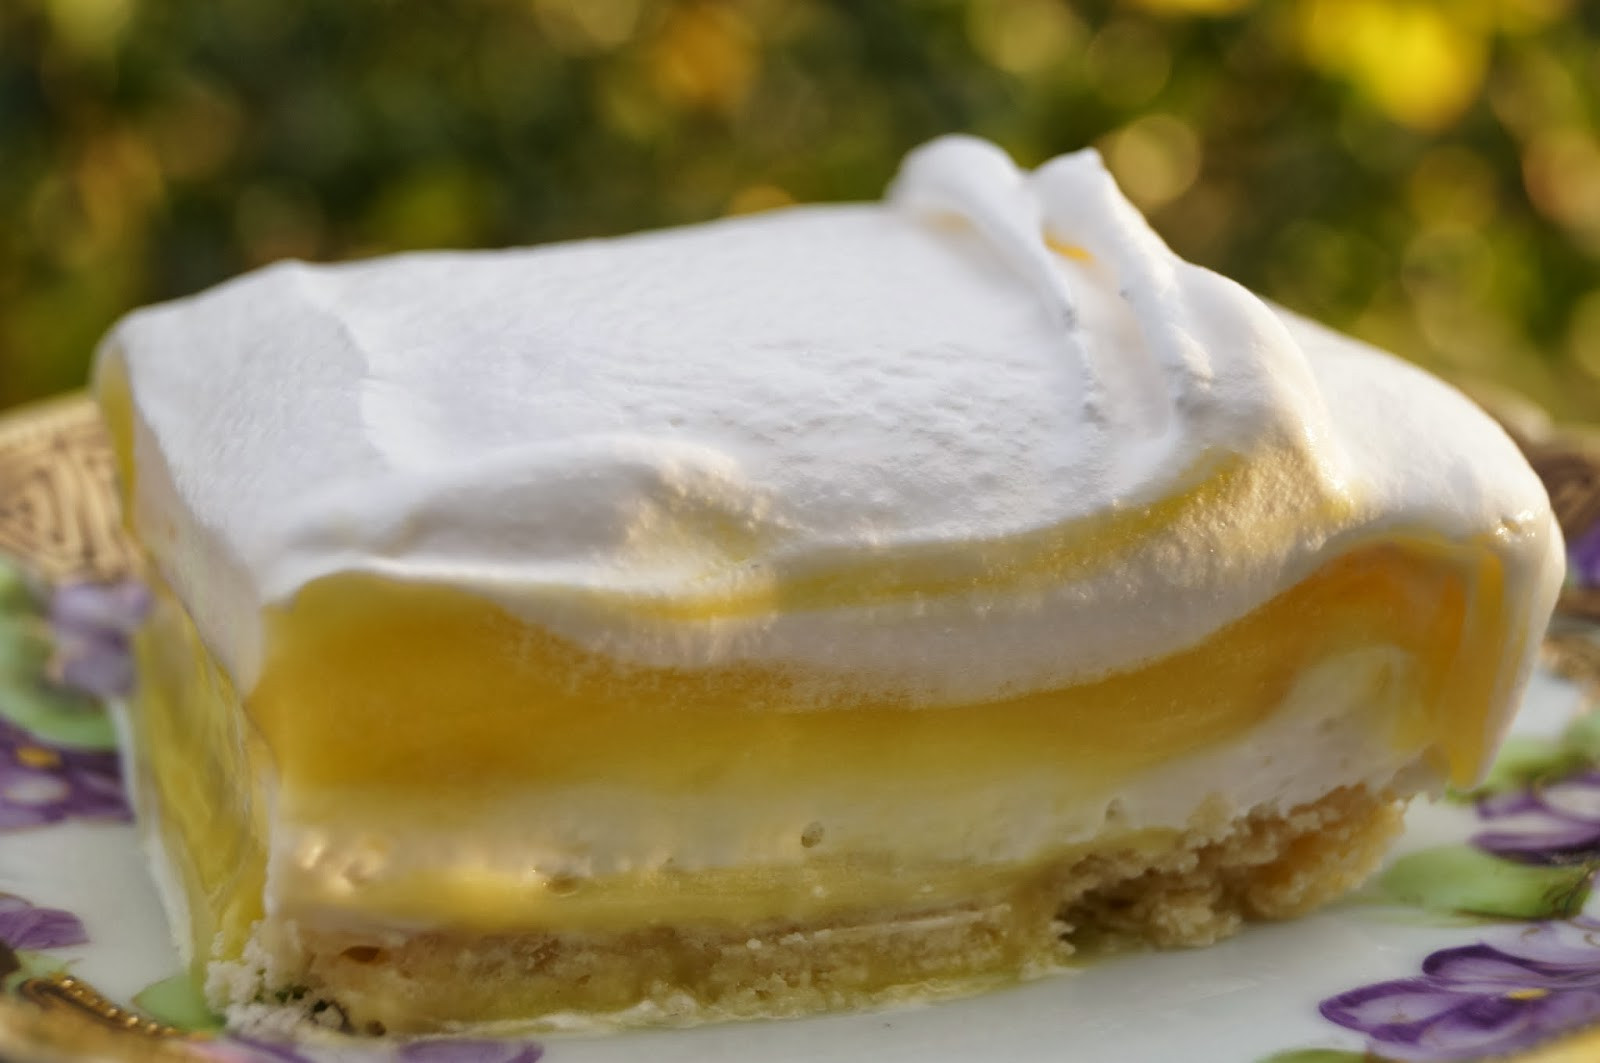 Desserts To Make With Cream Cheese  Ally s Sweet and Savory Eats Lemon Cream Cheese Dessert